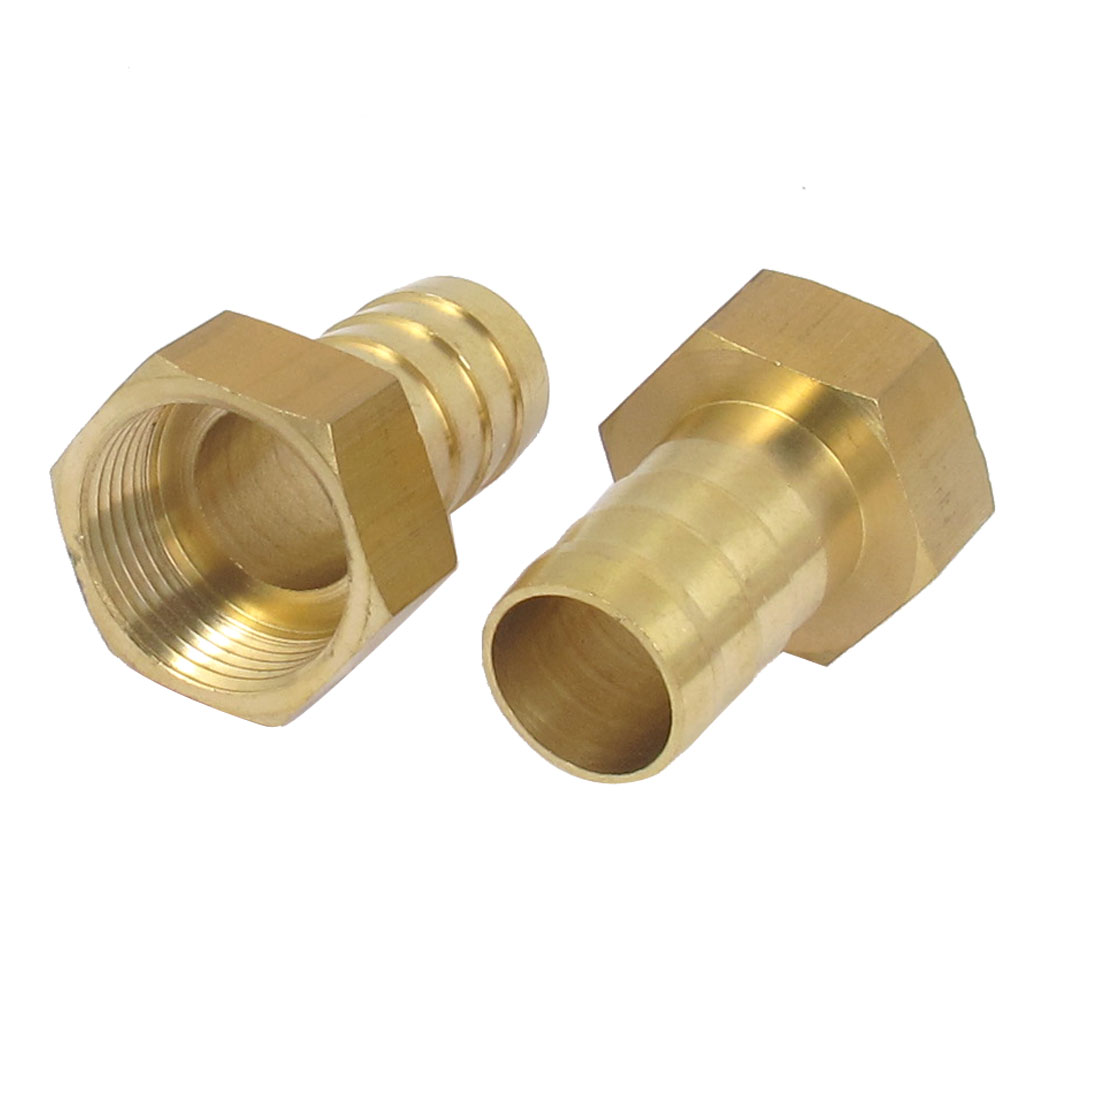 Brass 19mm Hose Barb 3/4BSP Female Thread Quick Joint Connector Adapter 2PCS